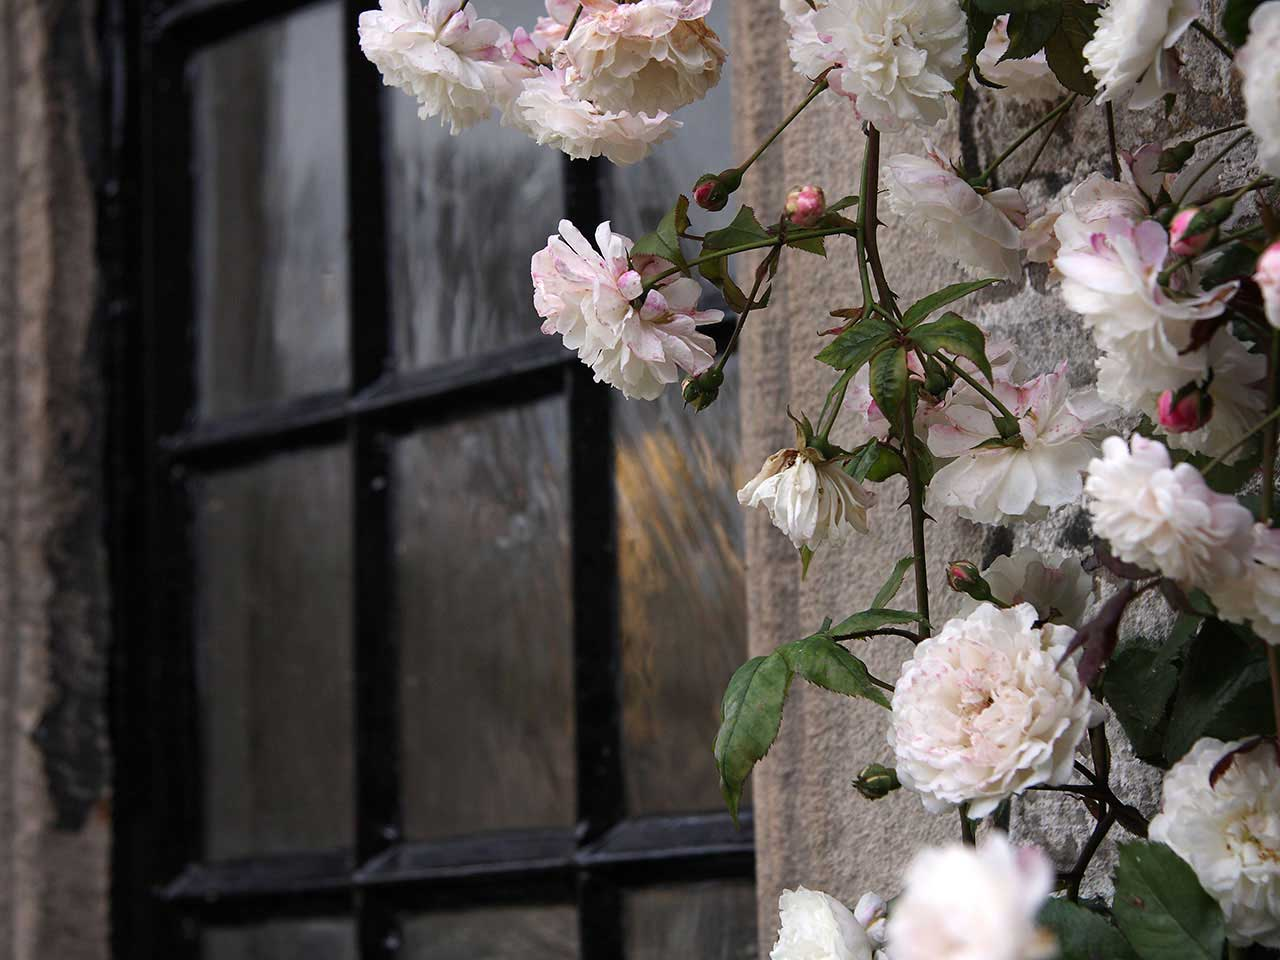 Rambling roses around a window